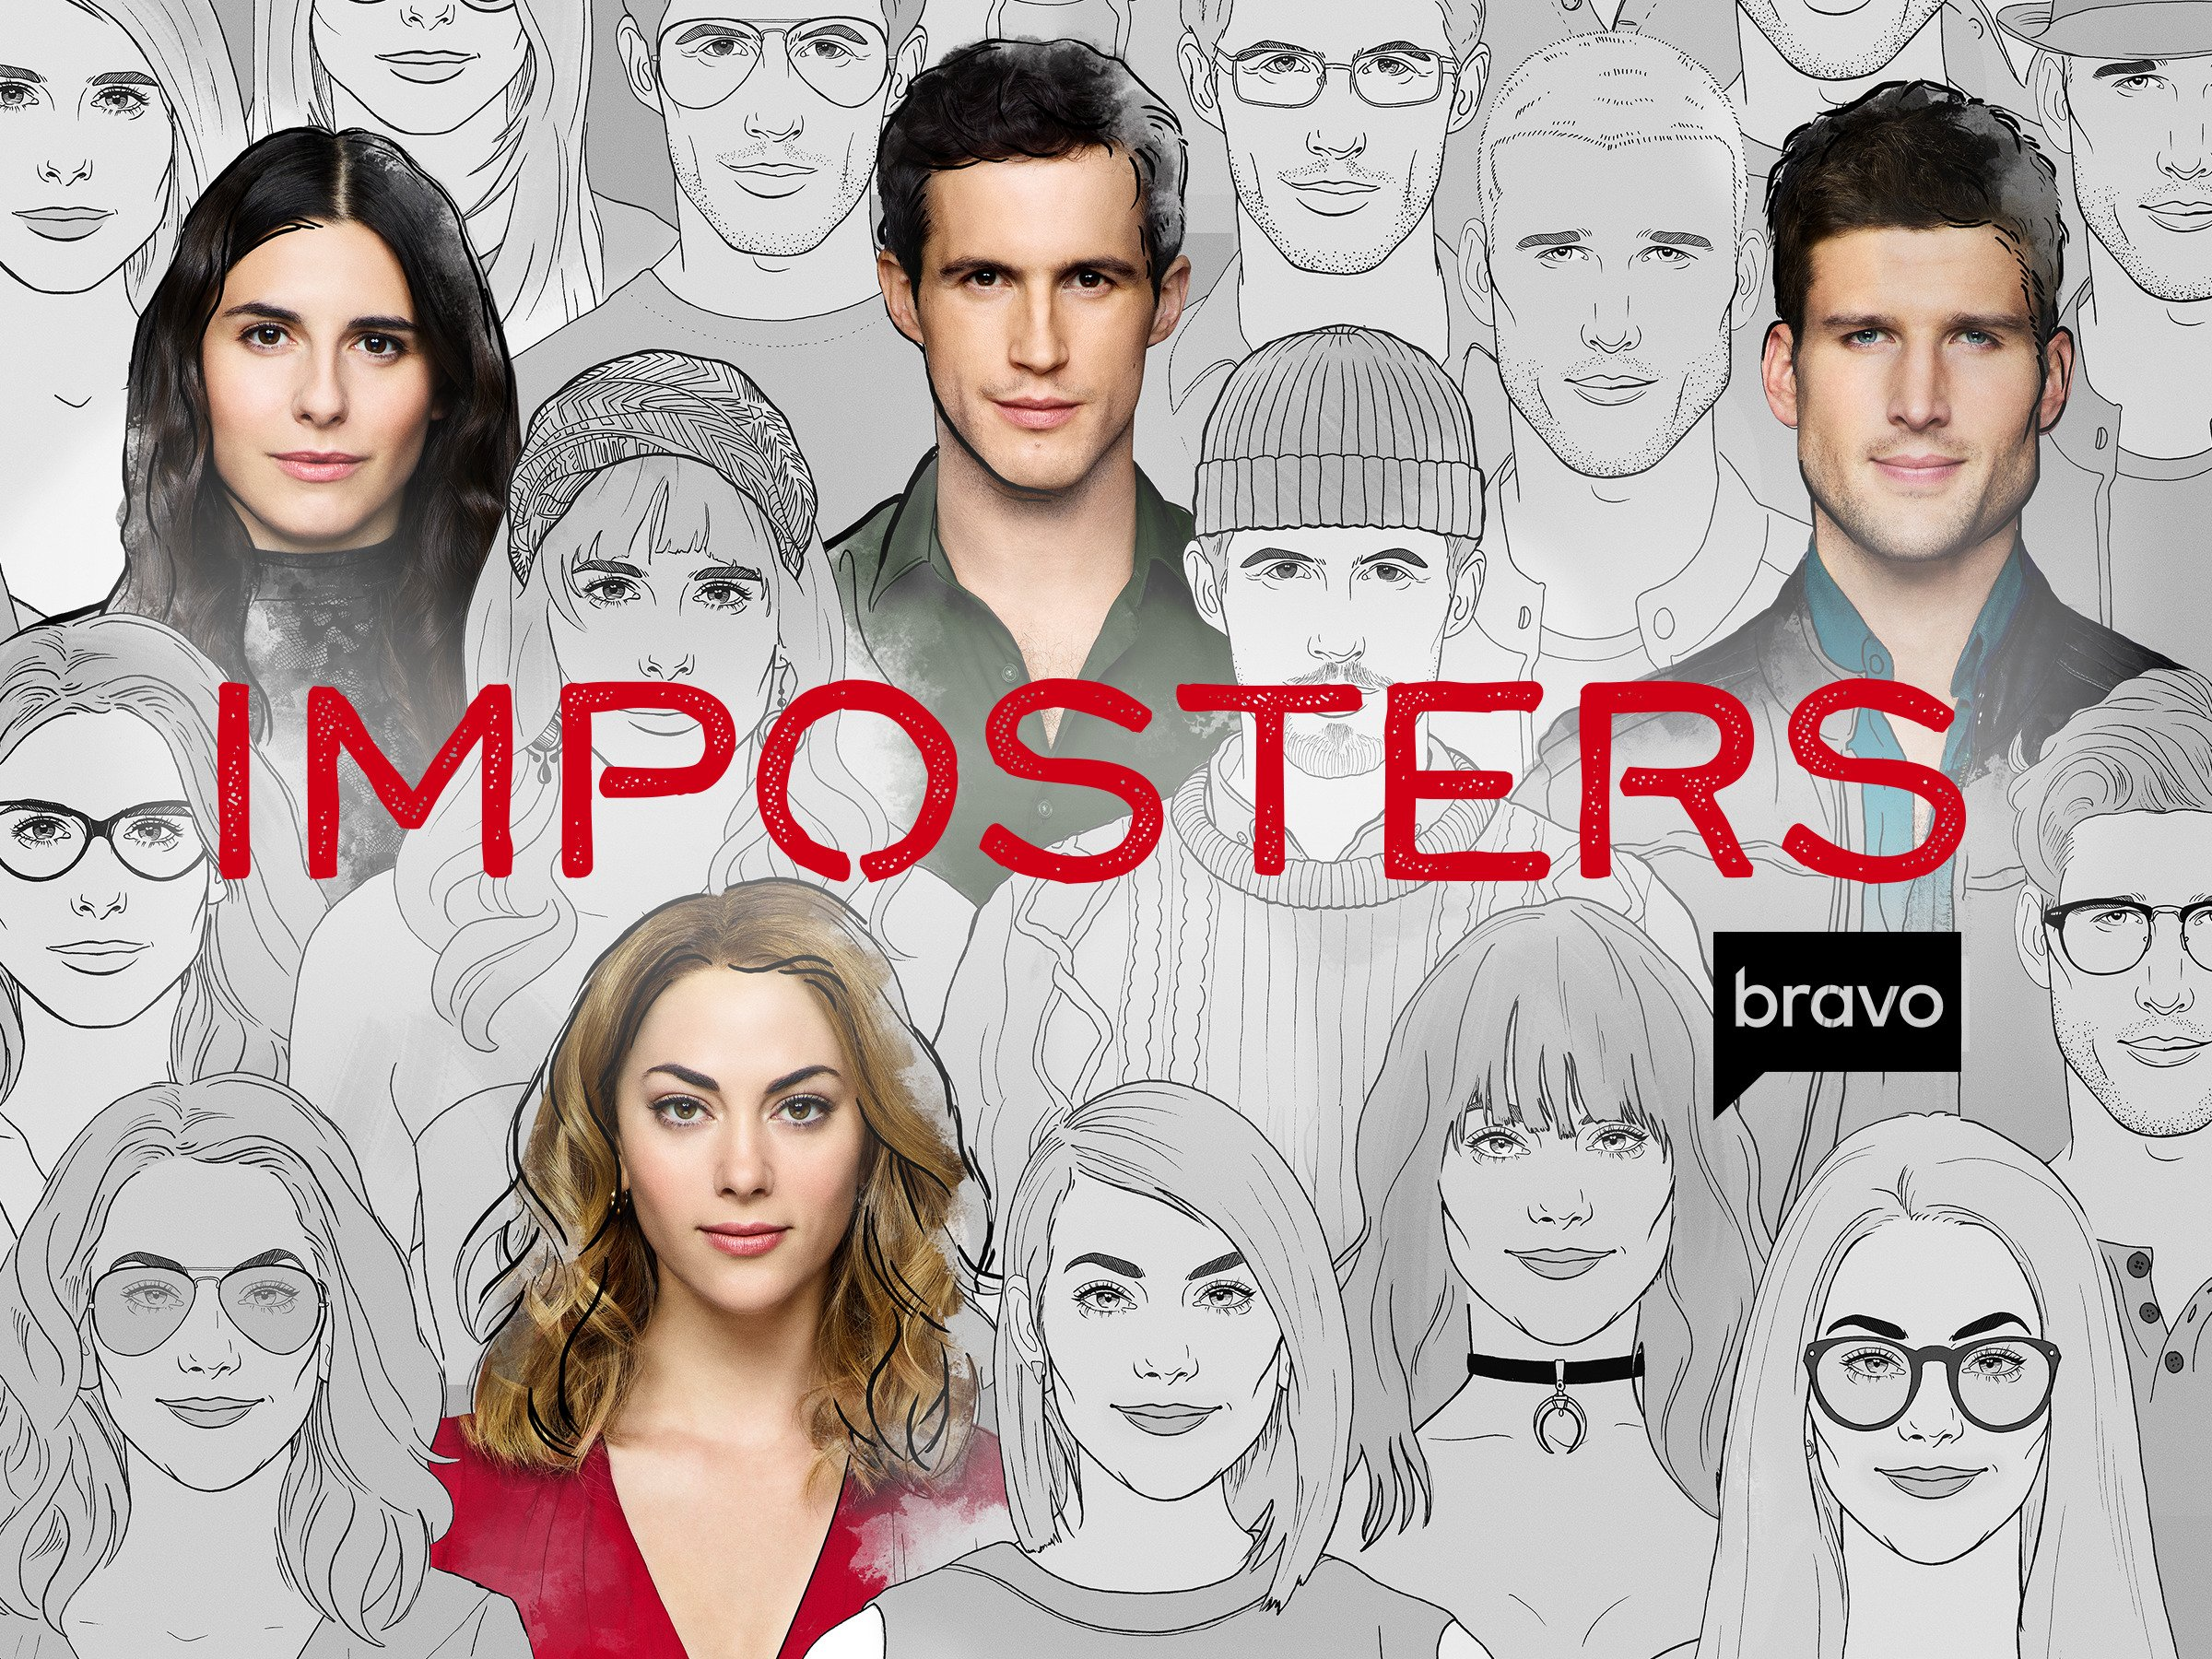 Image result for The imposters season 2